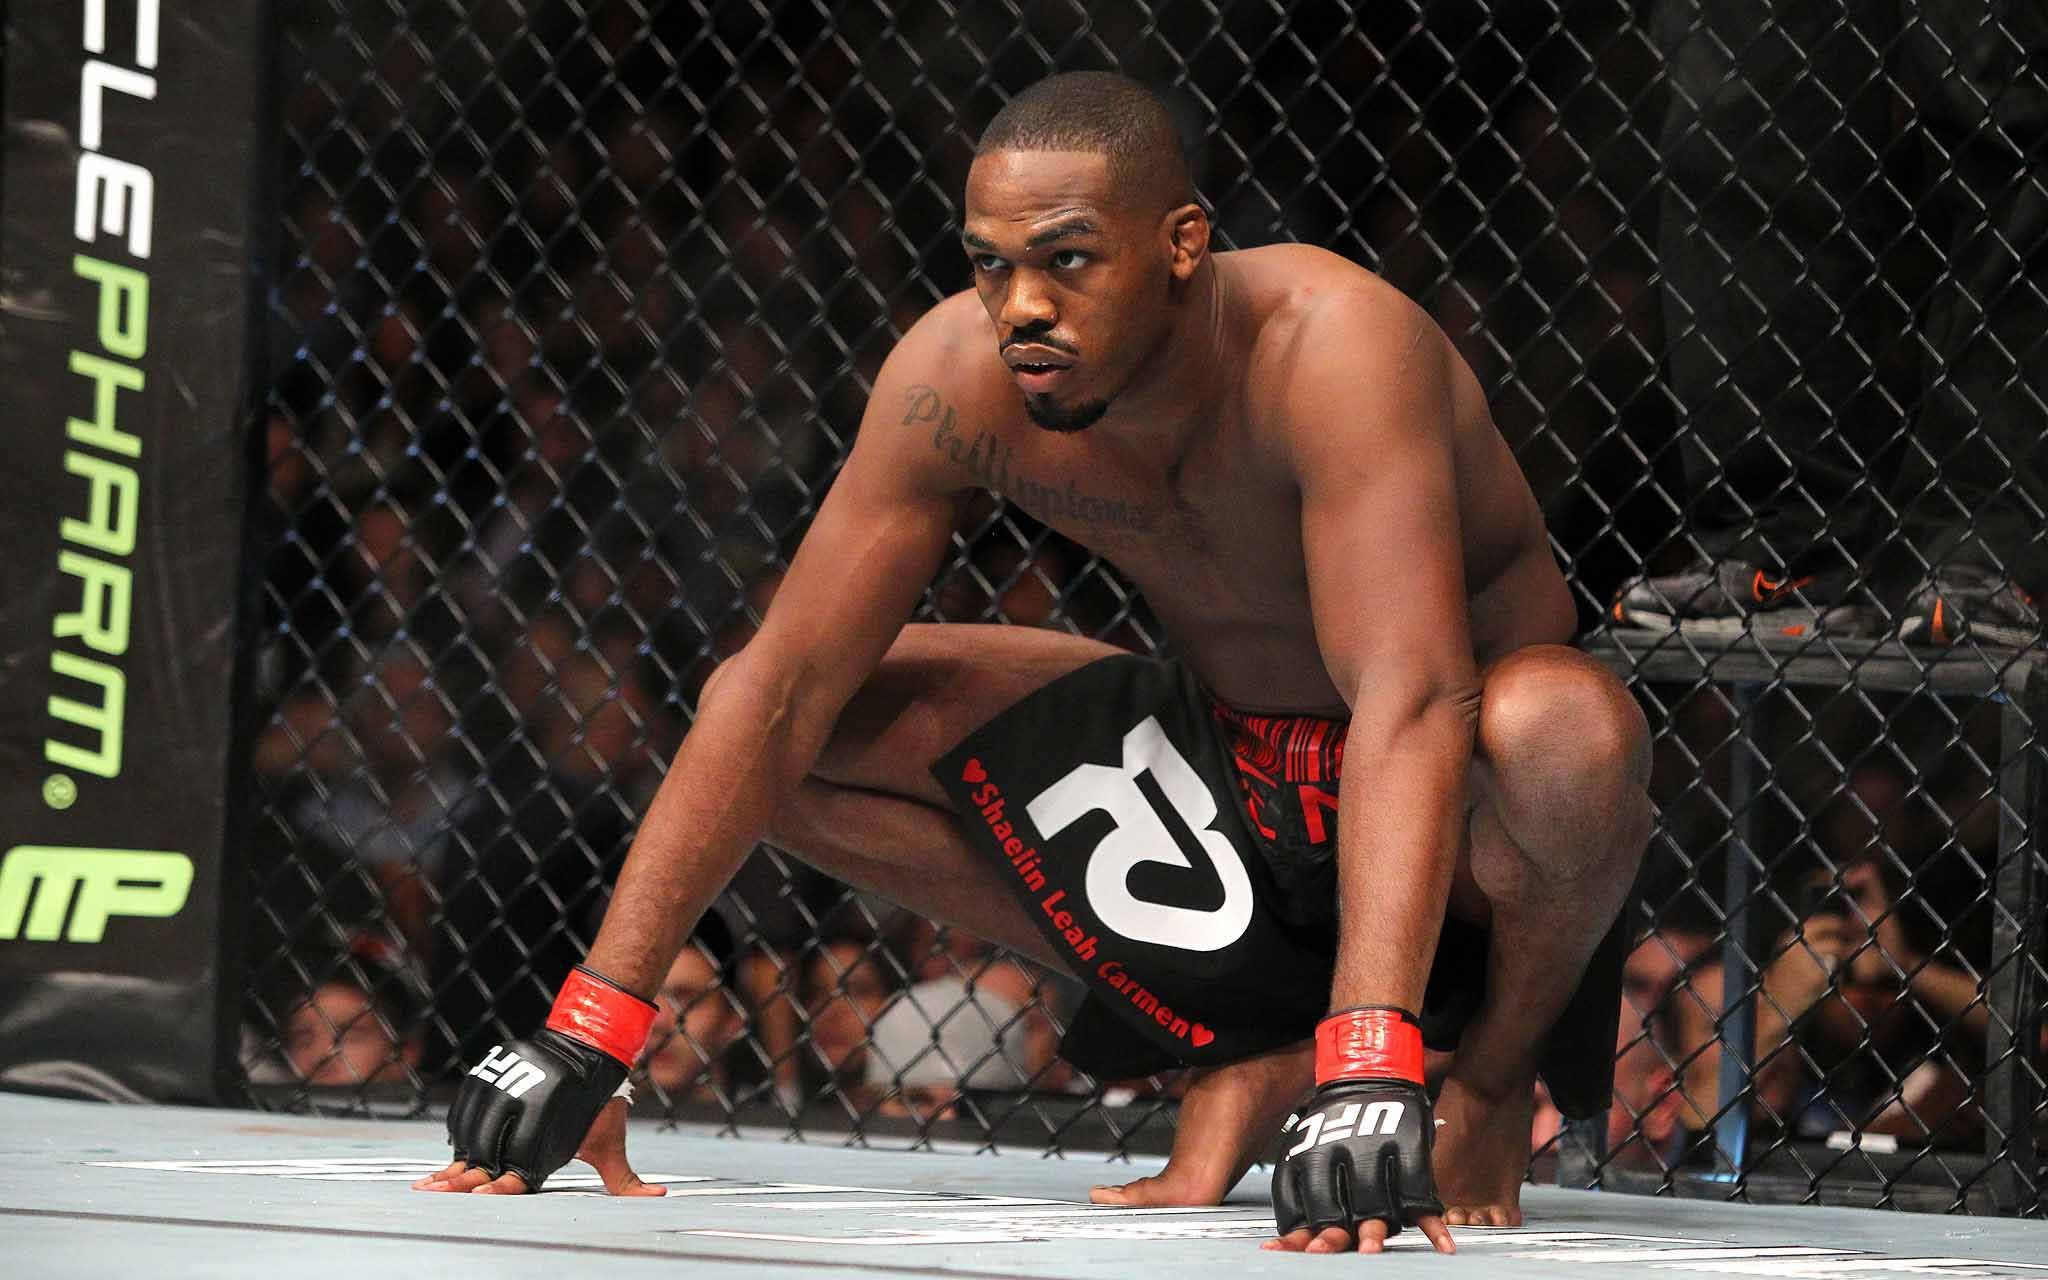 ufc mma Jon Jones hd wallpaper background for 2048x1280